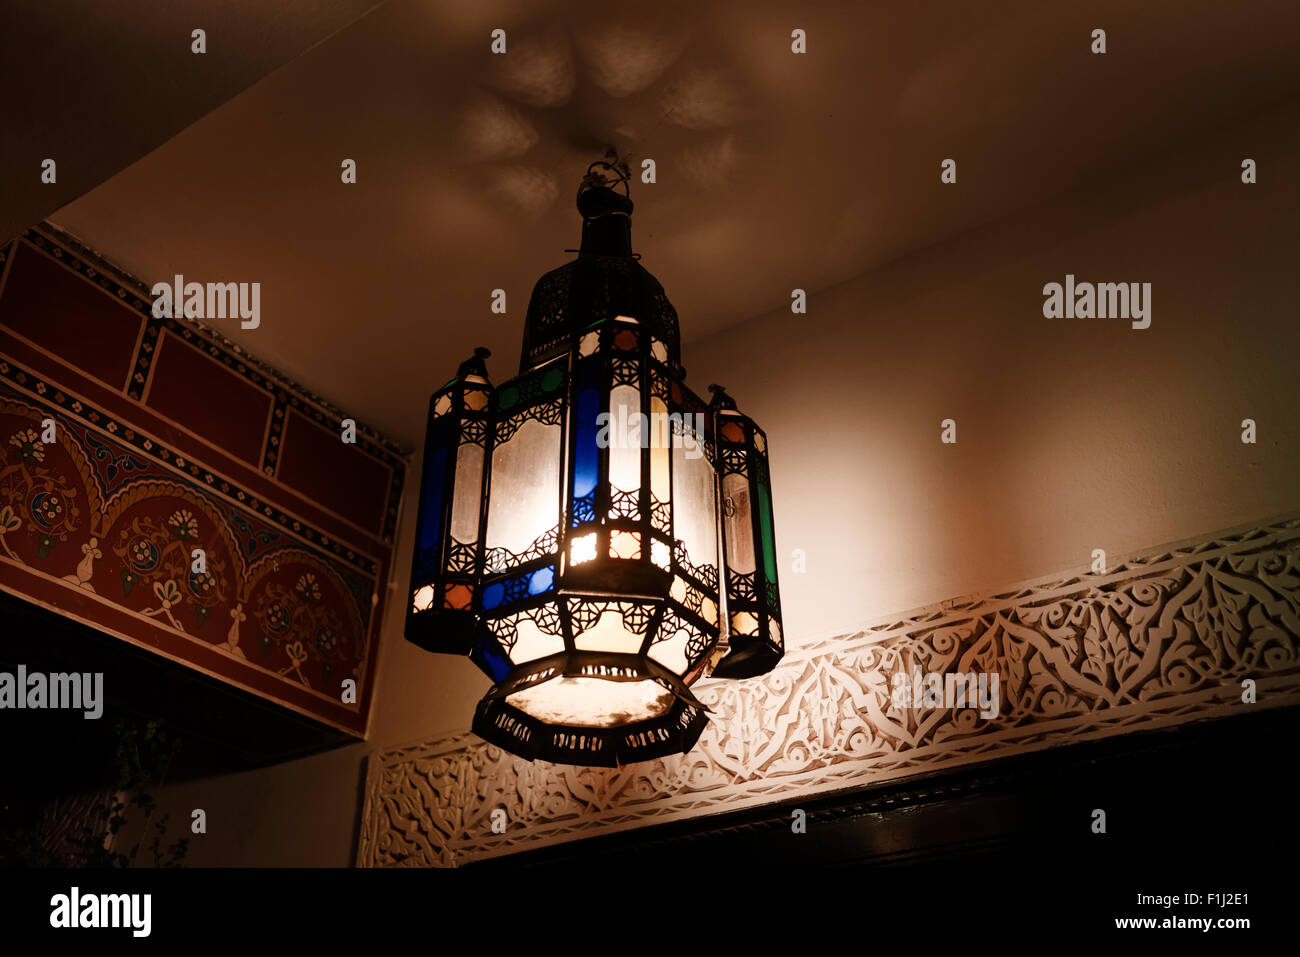 Traditional moroccan african lamp shade lampshade handing in a stock traditional moroccan african lamp shade lampshade handing in a marrakesh room with designed wall lit illuminated night mozeypictures Image collections